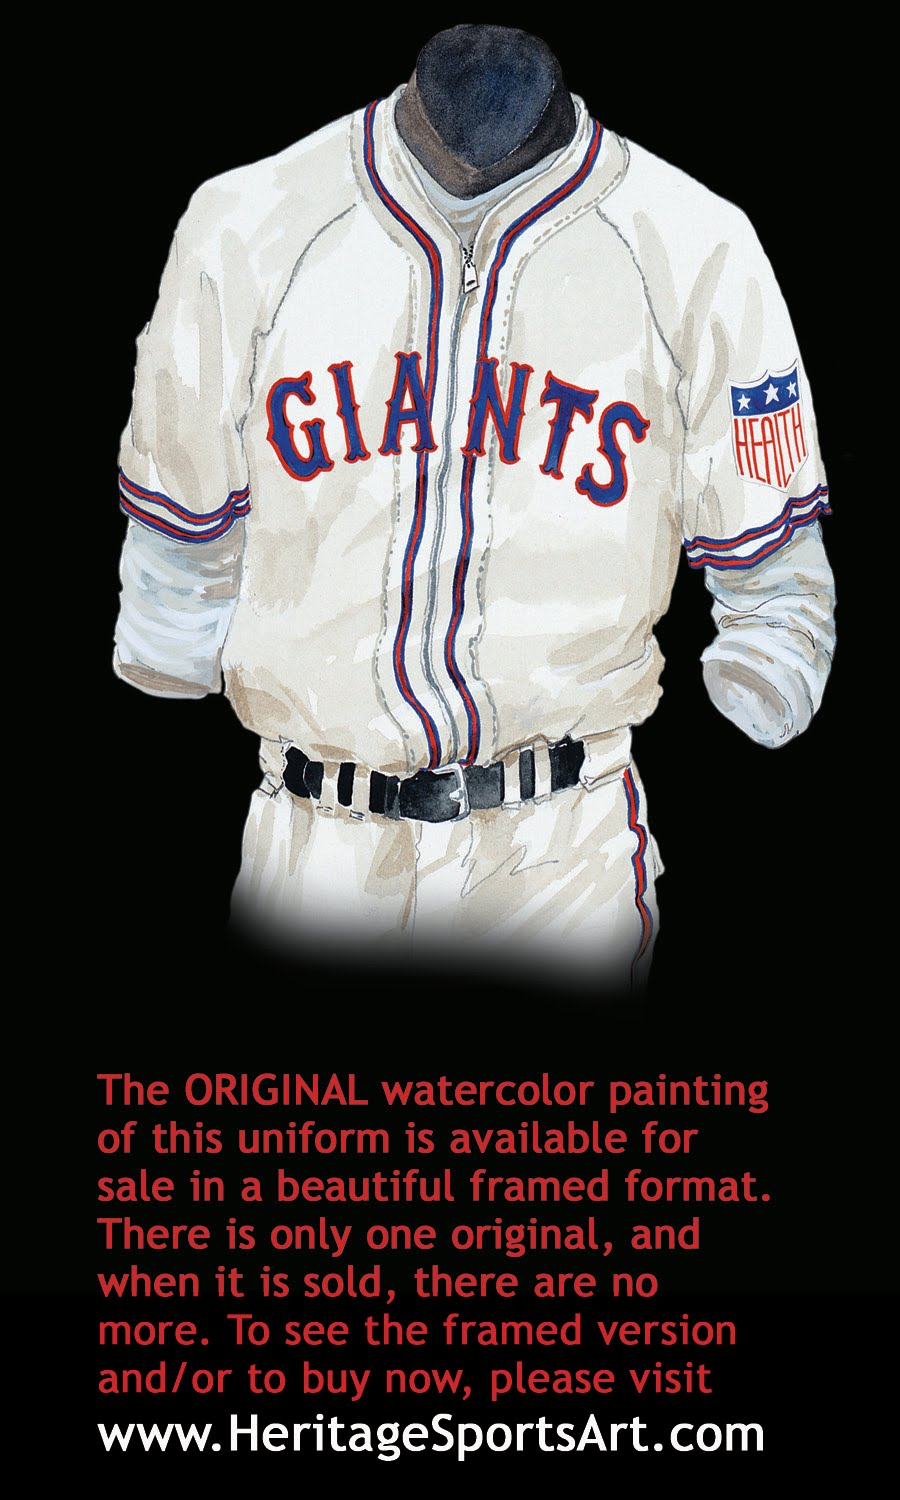 Click here to go to Heritage Sports Art and see the framed Giants artwork 69bc83d6c